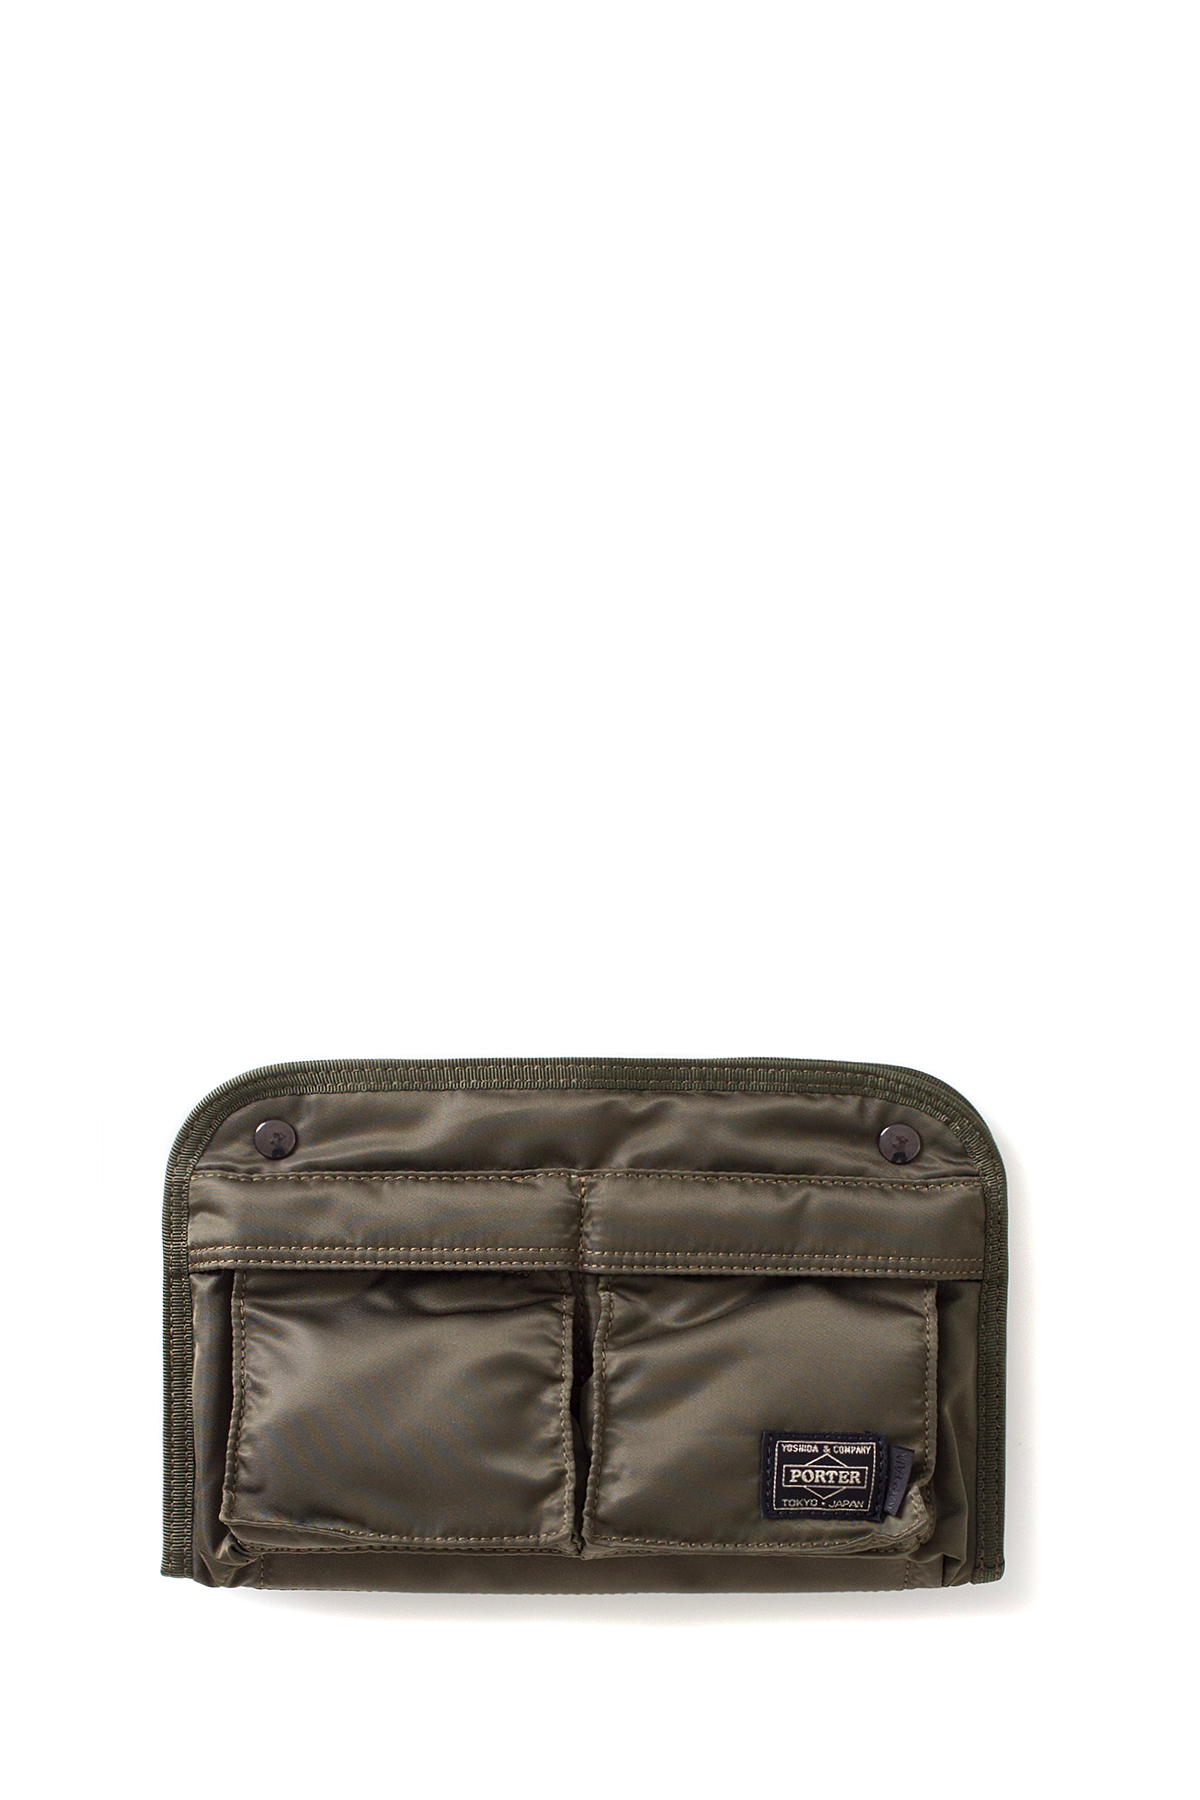 Kaptain Sunshine : Travel Bag (Olive)